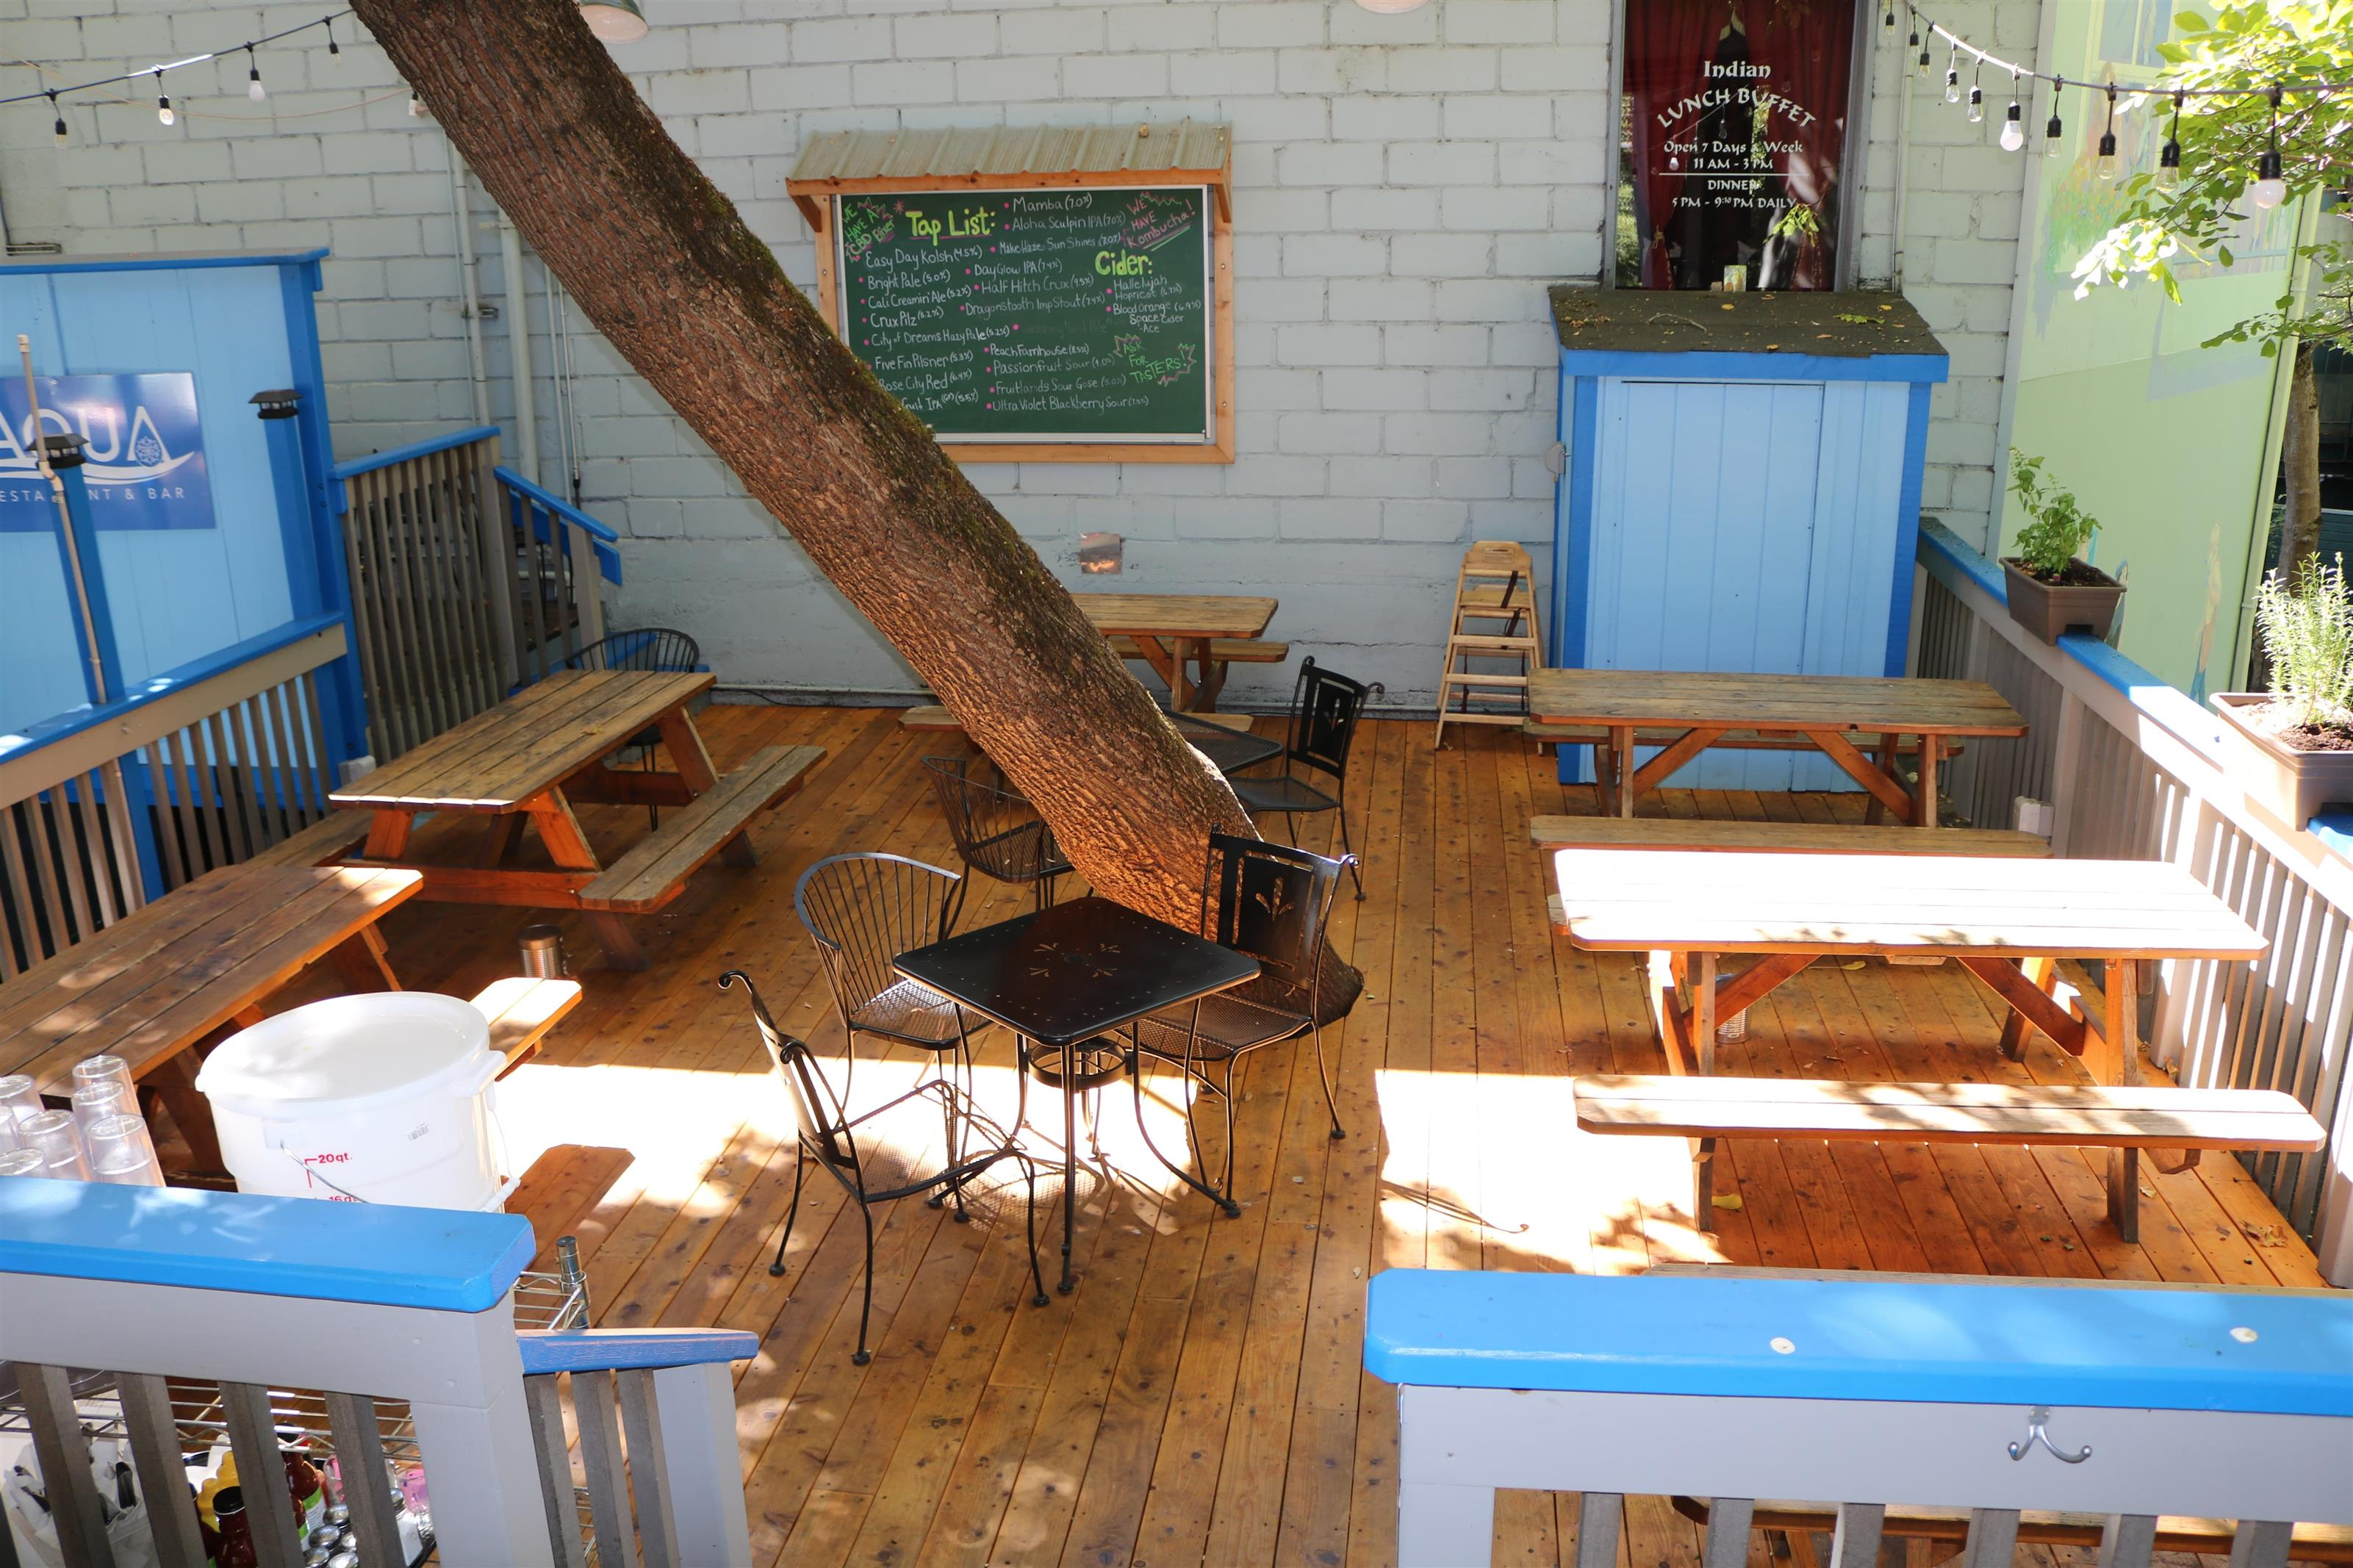 Outdoor seating with wood bench picnick tables, wooden floor. Chalkboard tap list is on white brick wall.